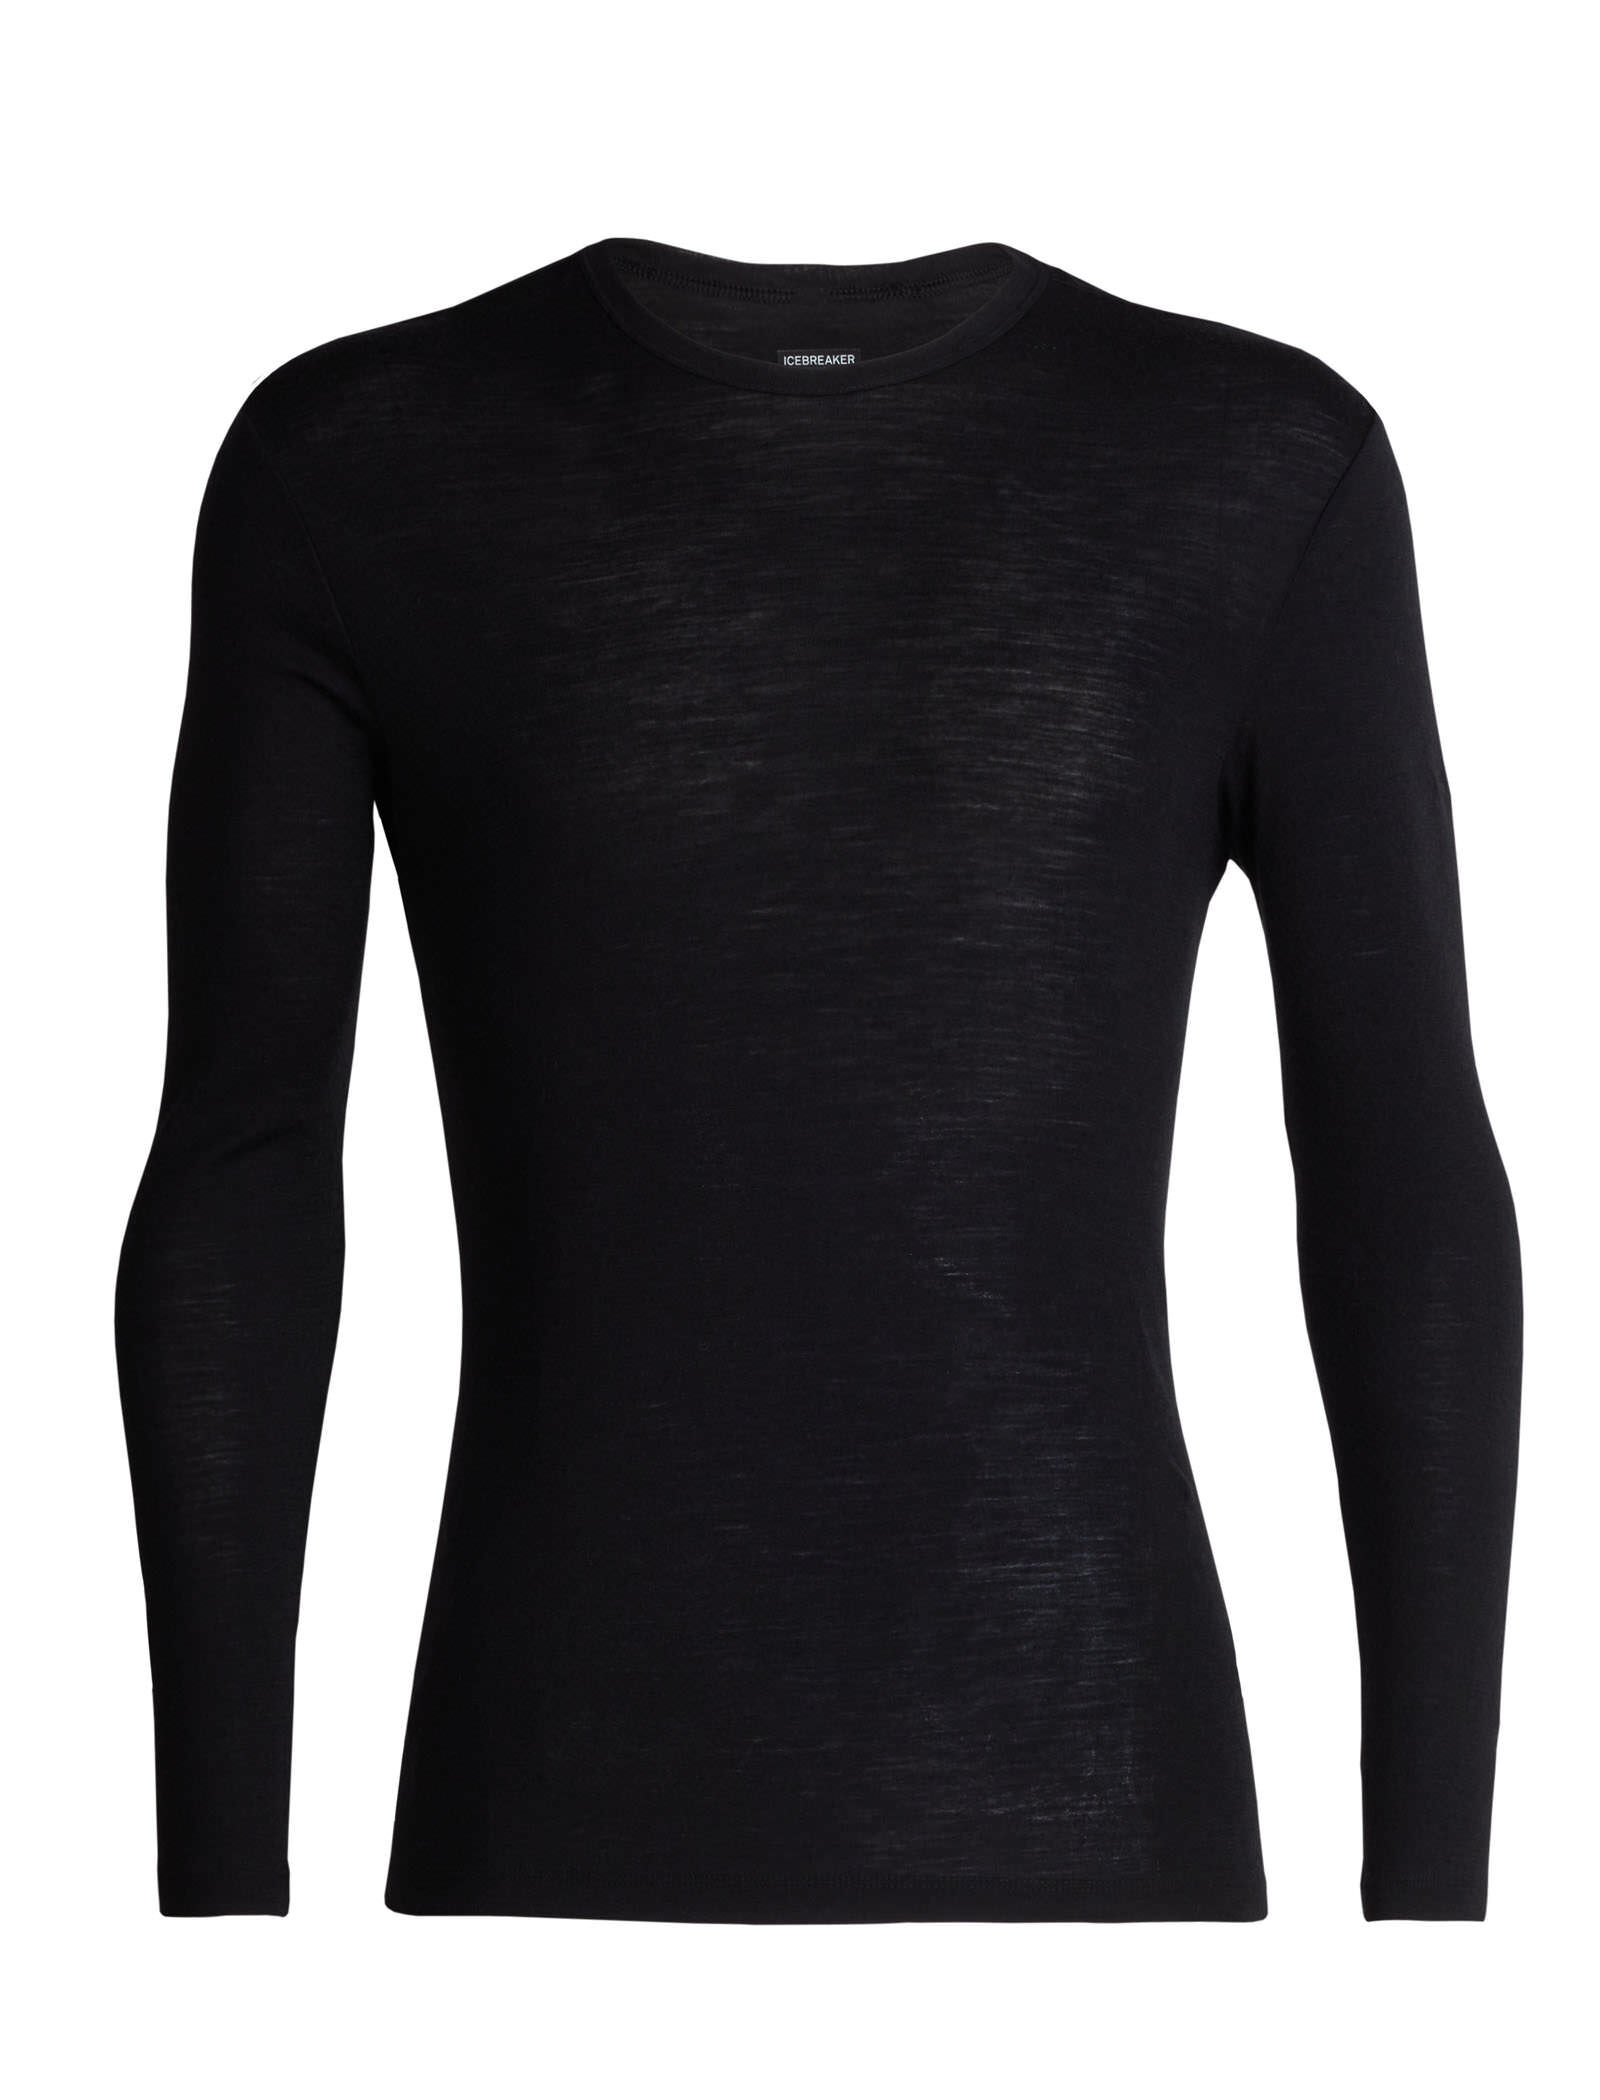 +MD Mens Seamless Wool Crew Neck Long Sleeve T-Shirt Thermal Underwear Shirt Base Layer Top